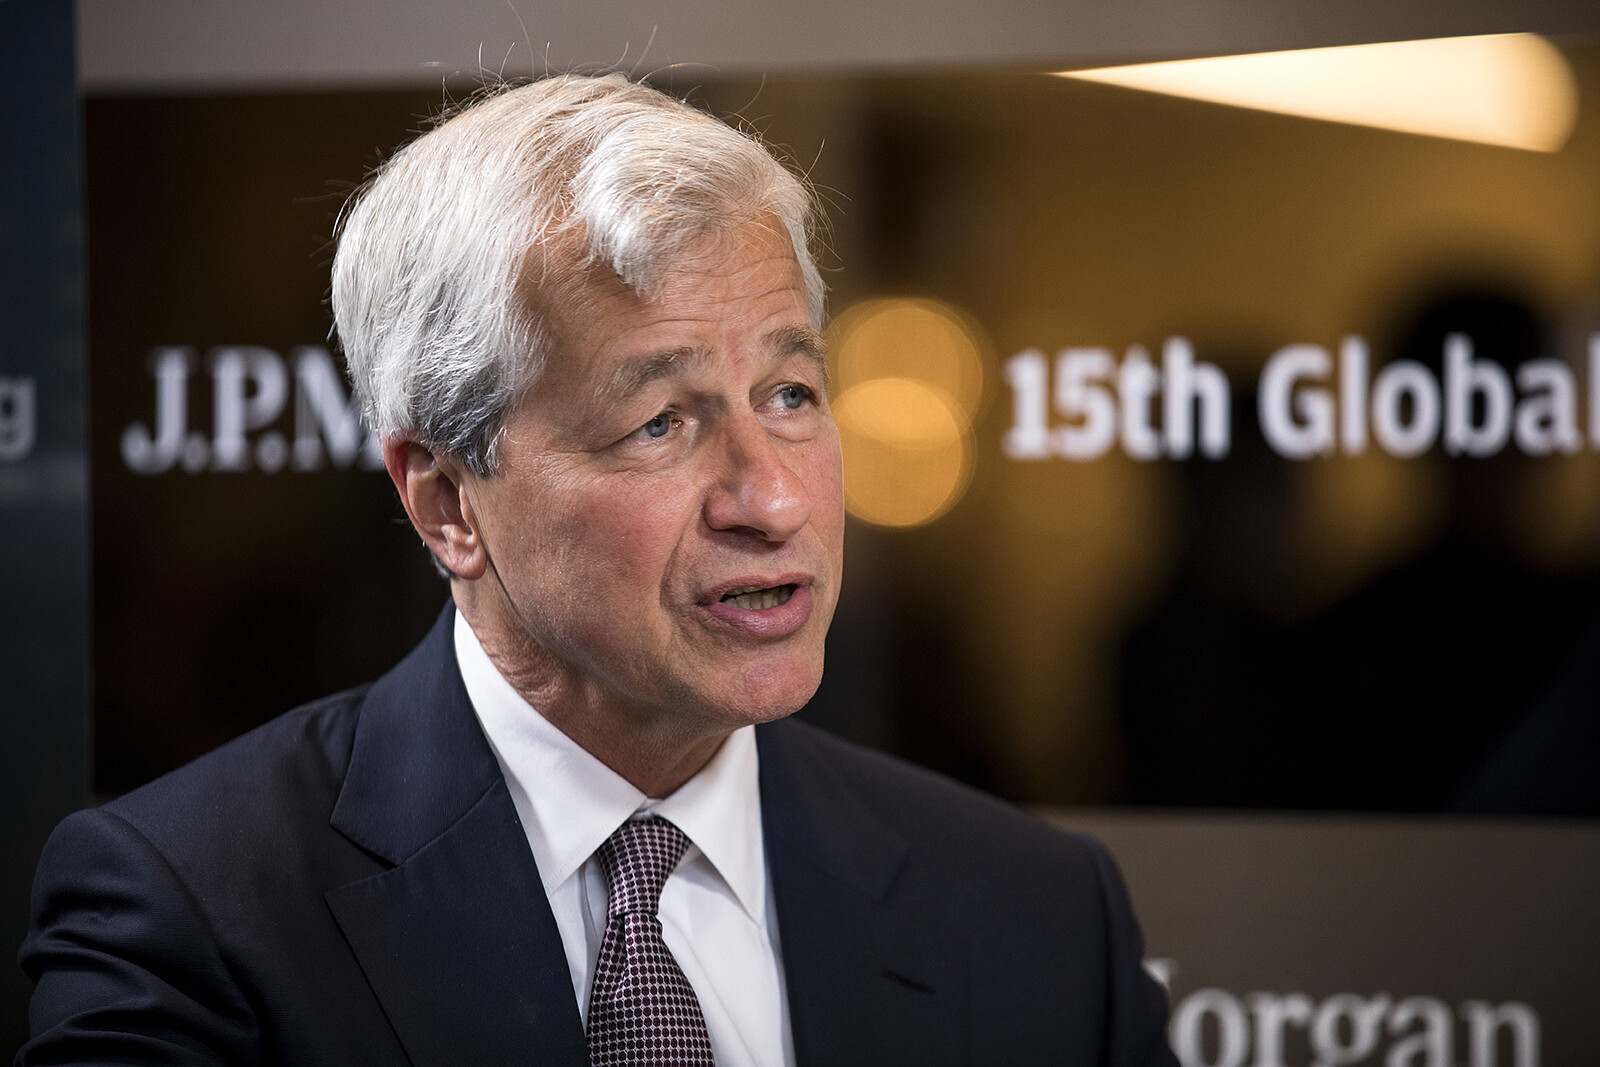 Jamie Dimon awarded hundreds of millions of dollars to stay at JPMorgan for the foreseeable future